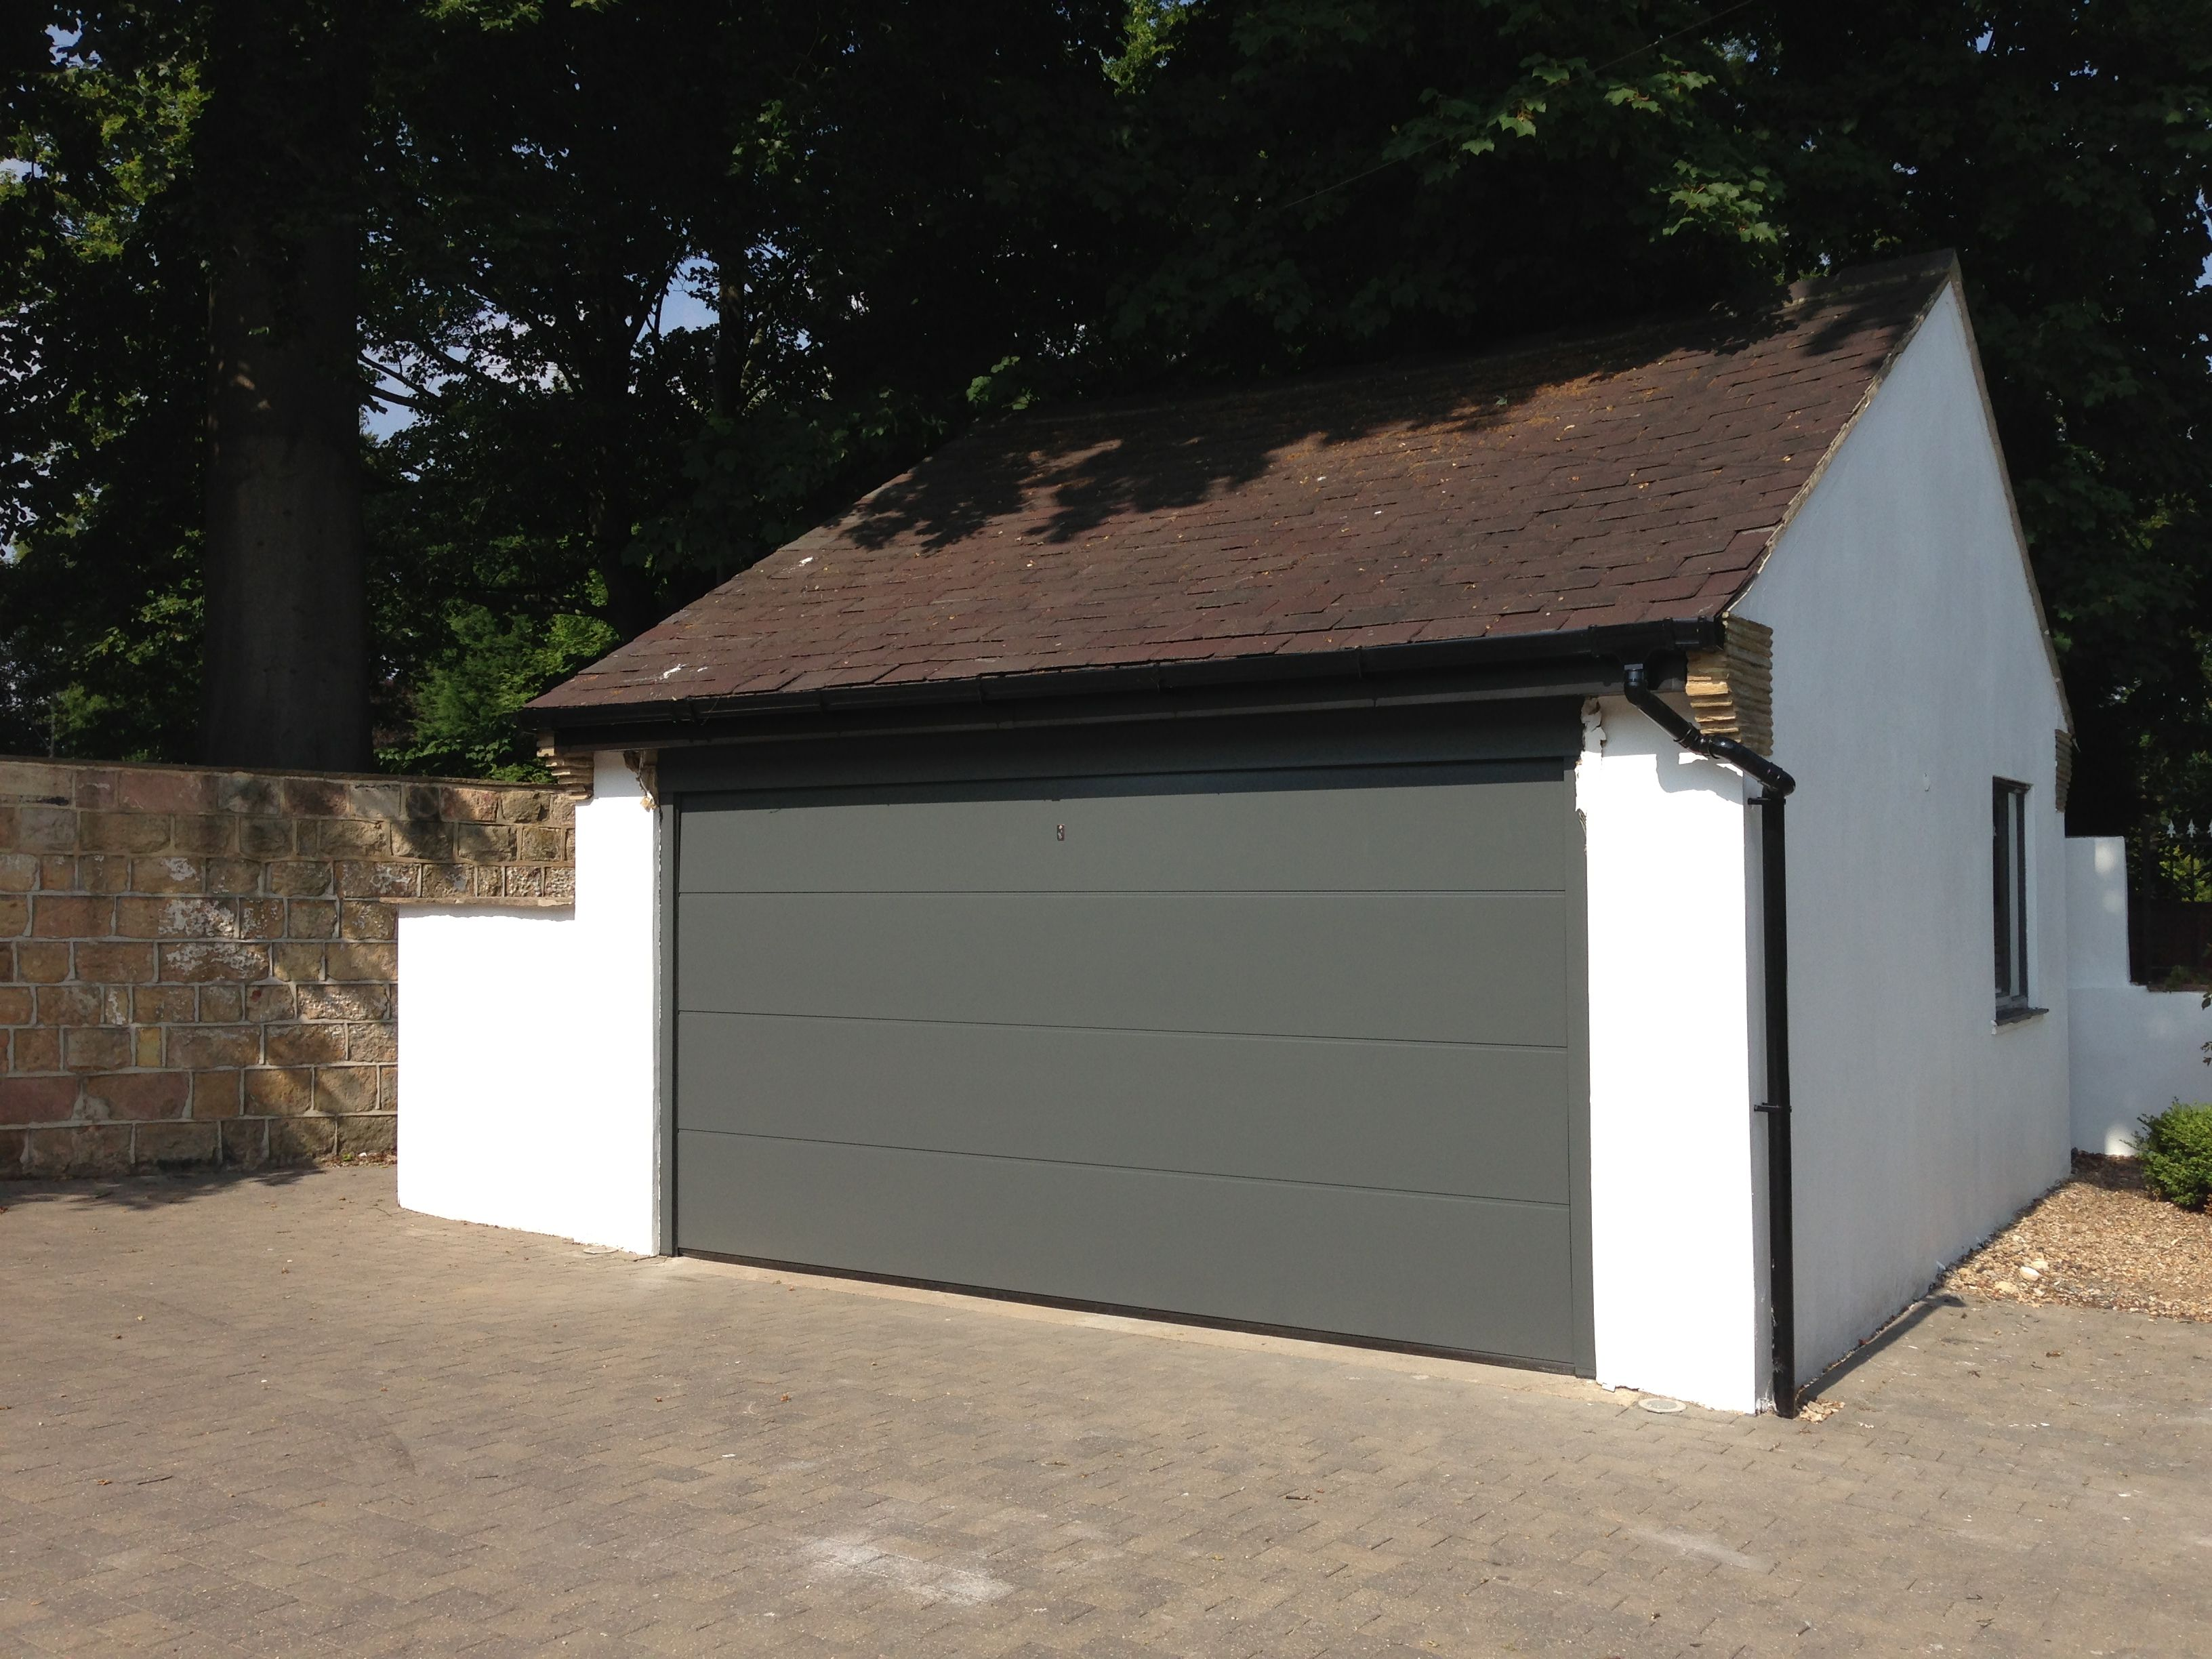 Hormann L Ribbed Made To Measure Sectional Garage Door In Traffic